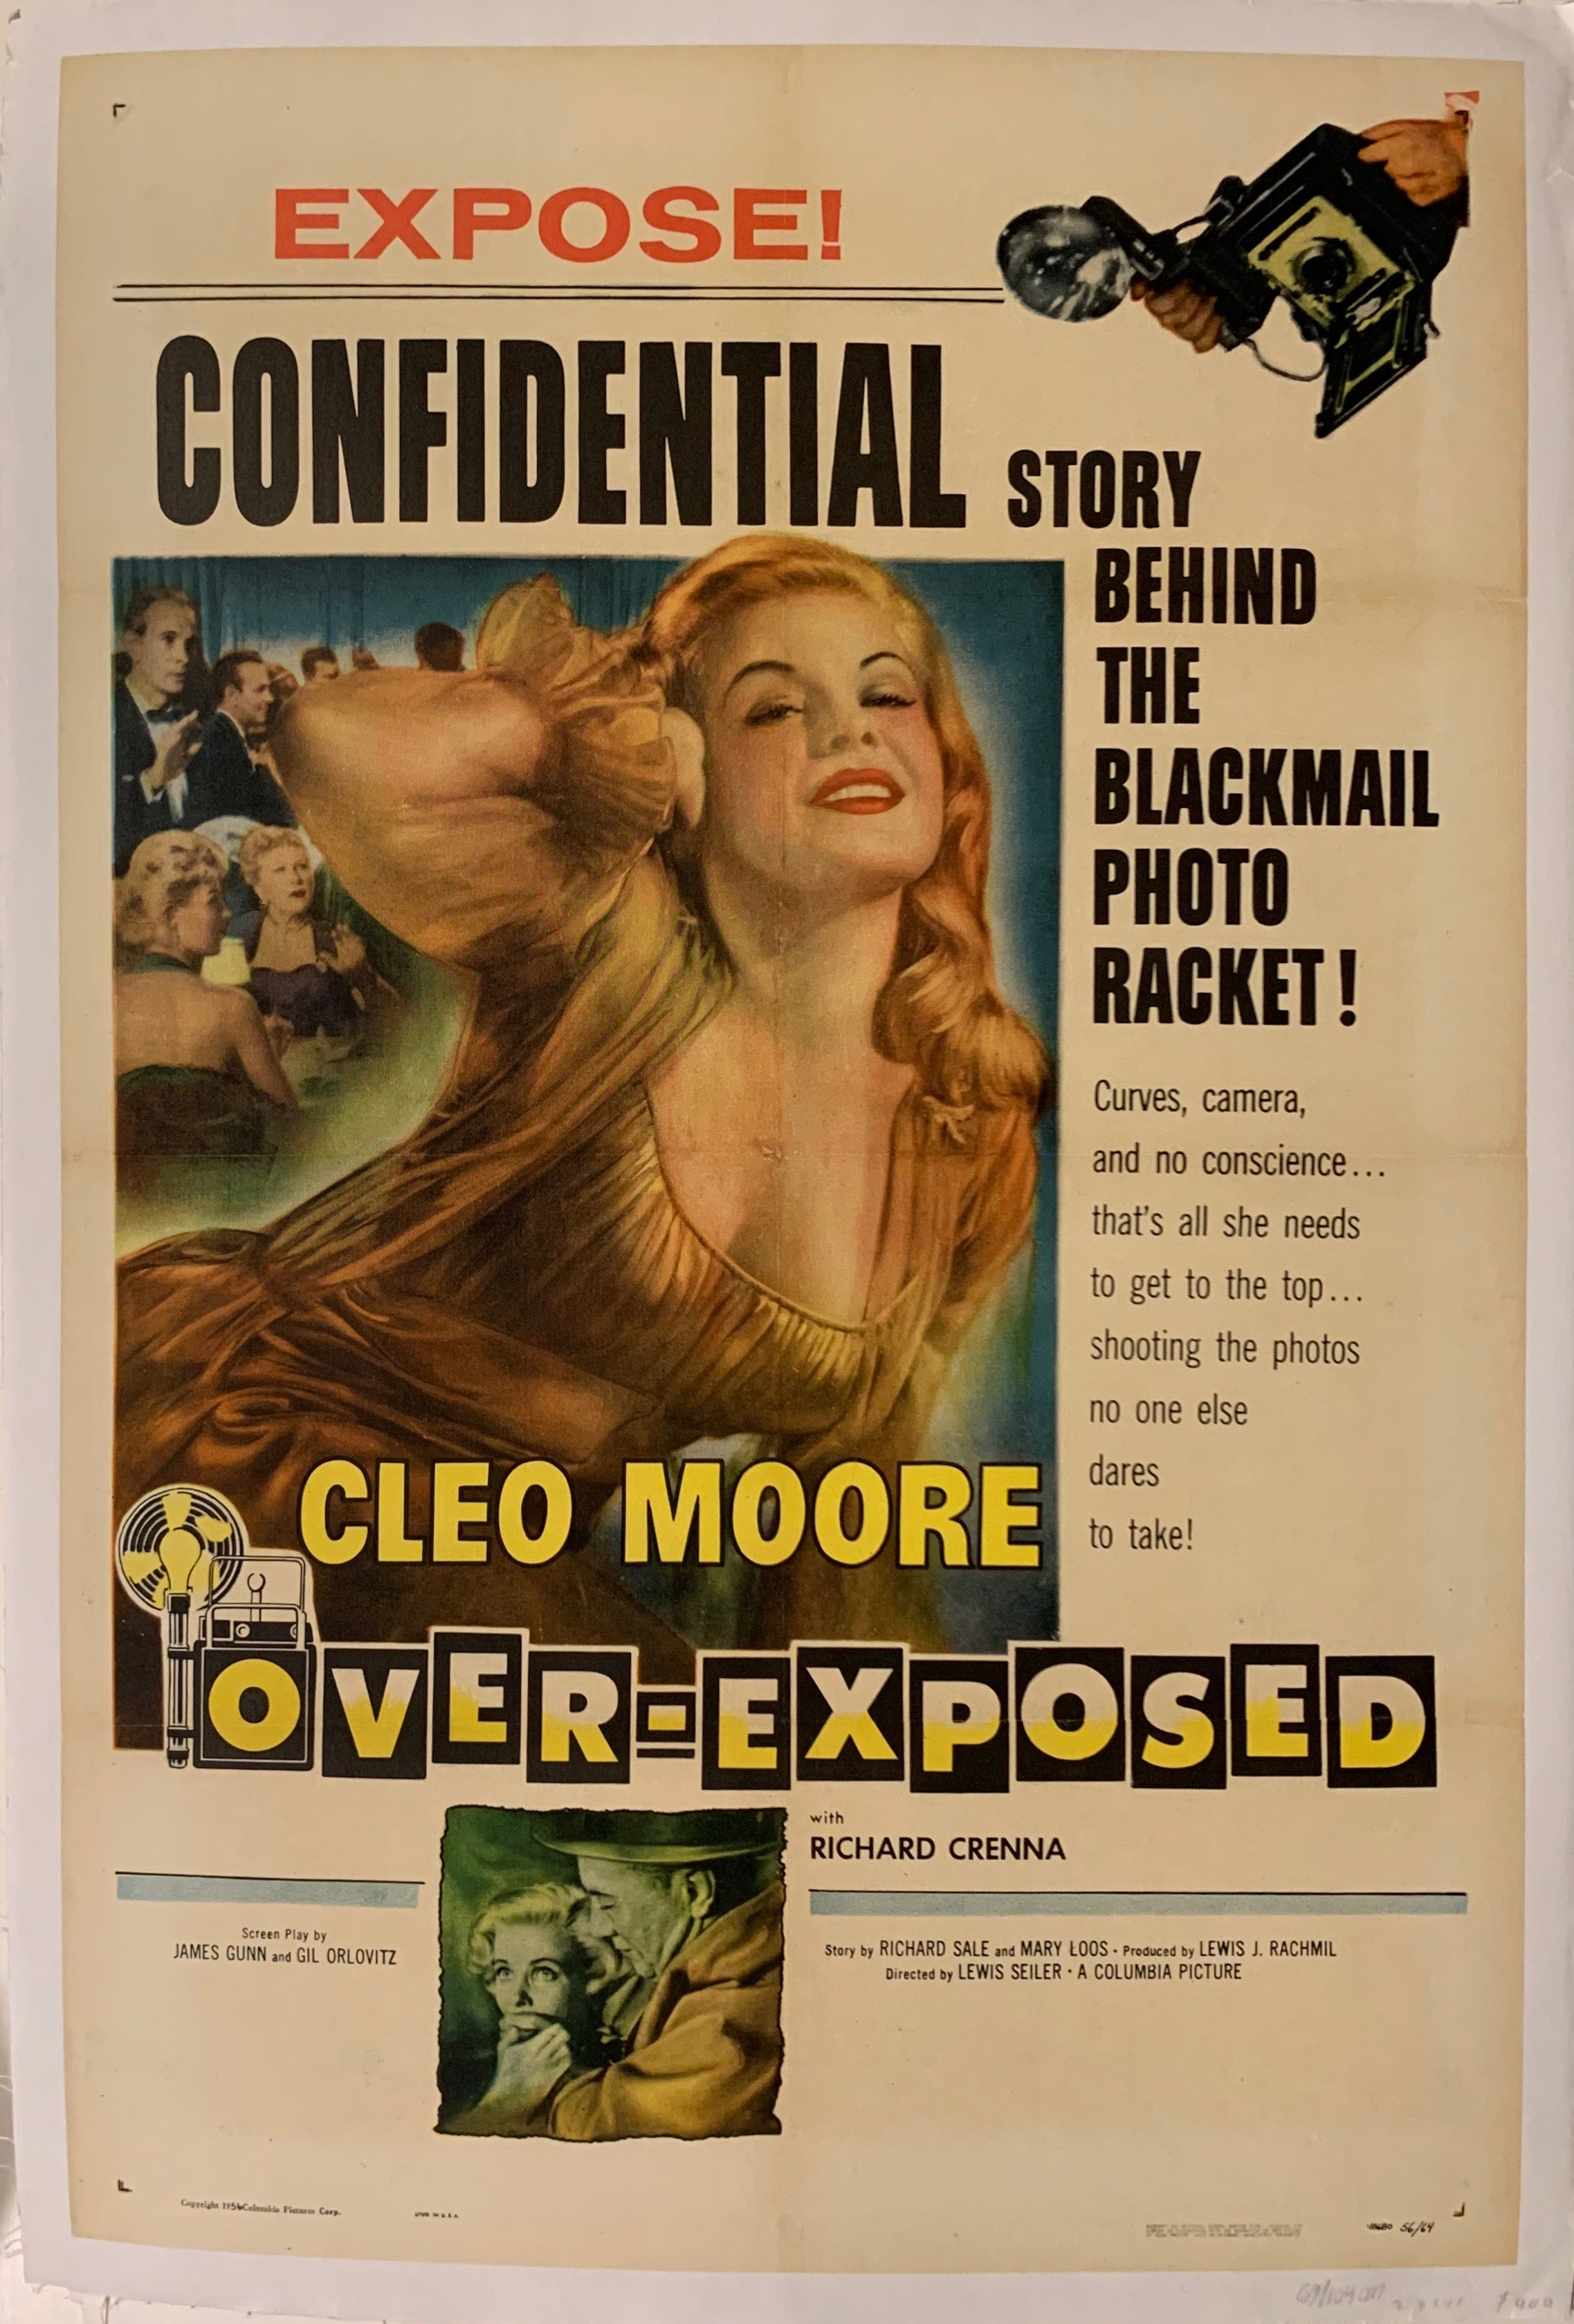 Over-Exposed Film Poster